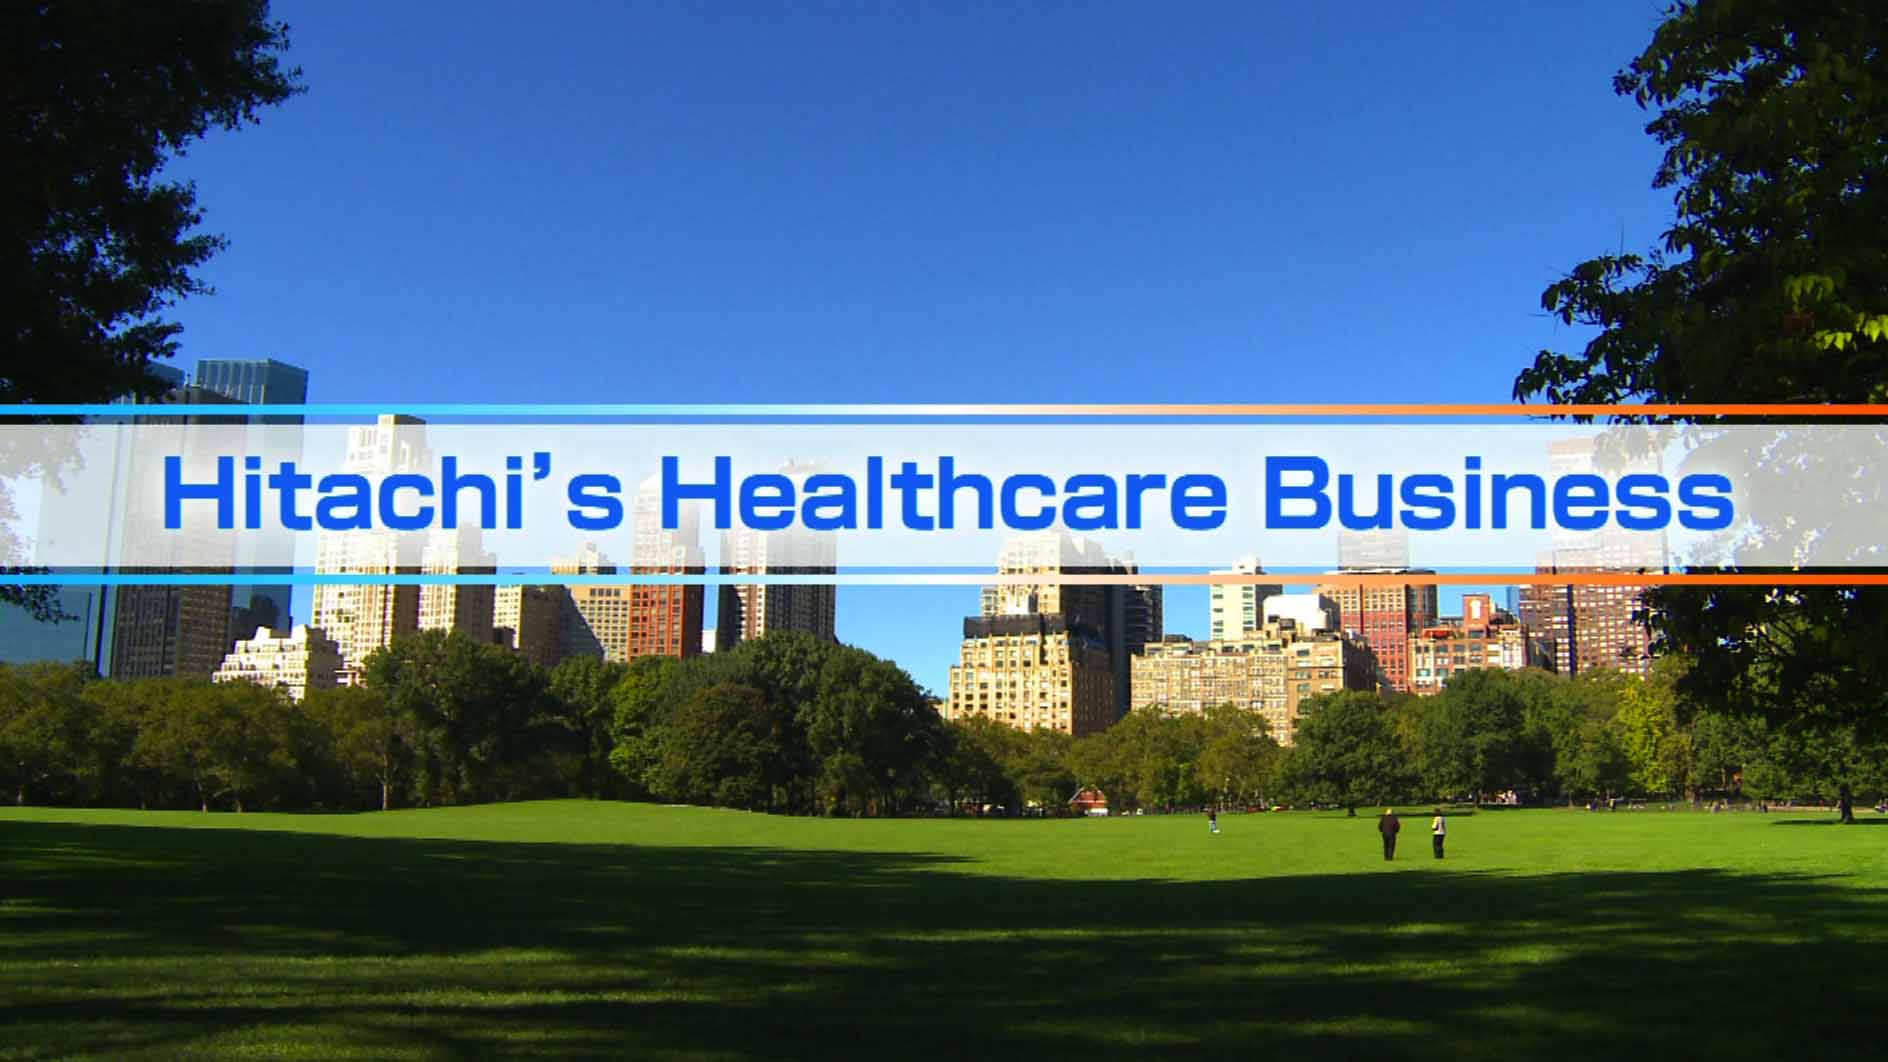 Hitachi's Healthcare Business